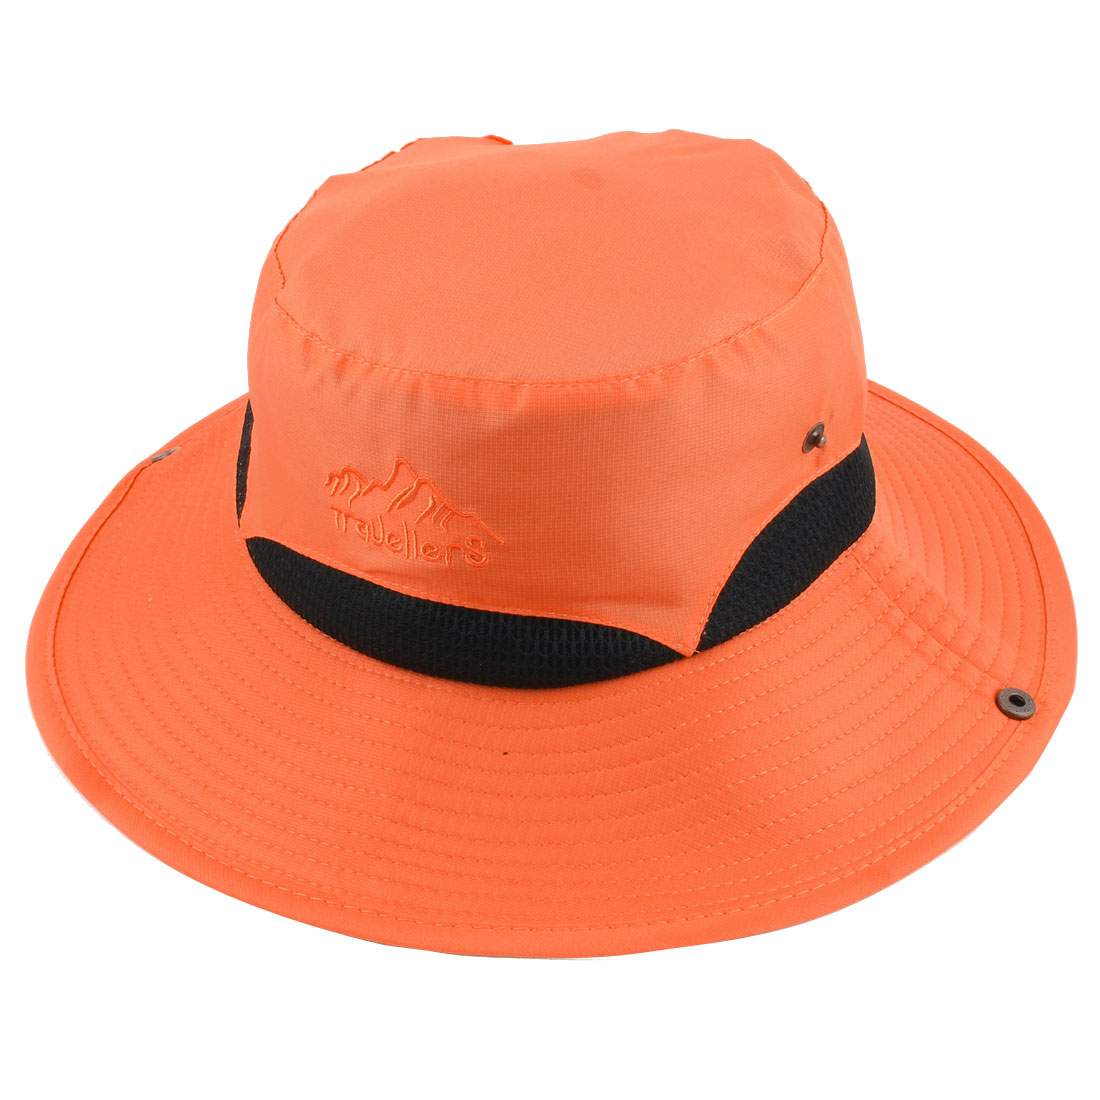 Ladies Women Polyester Foldable Head Decor Summer Protective Traveling Wide Brim Sun Cap Beach Fishing Hat Orange